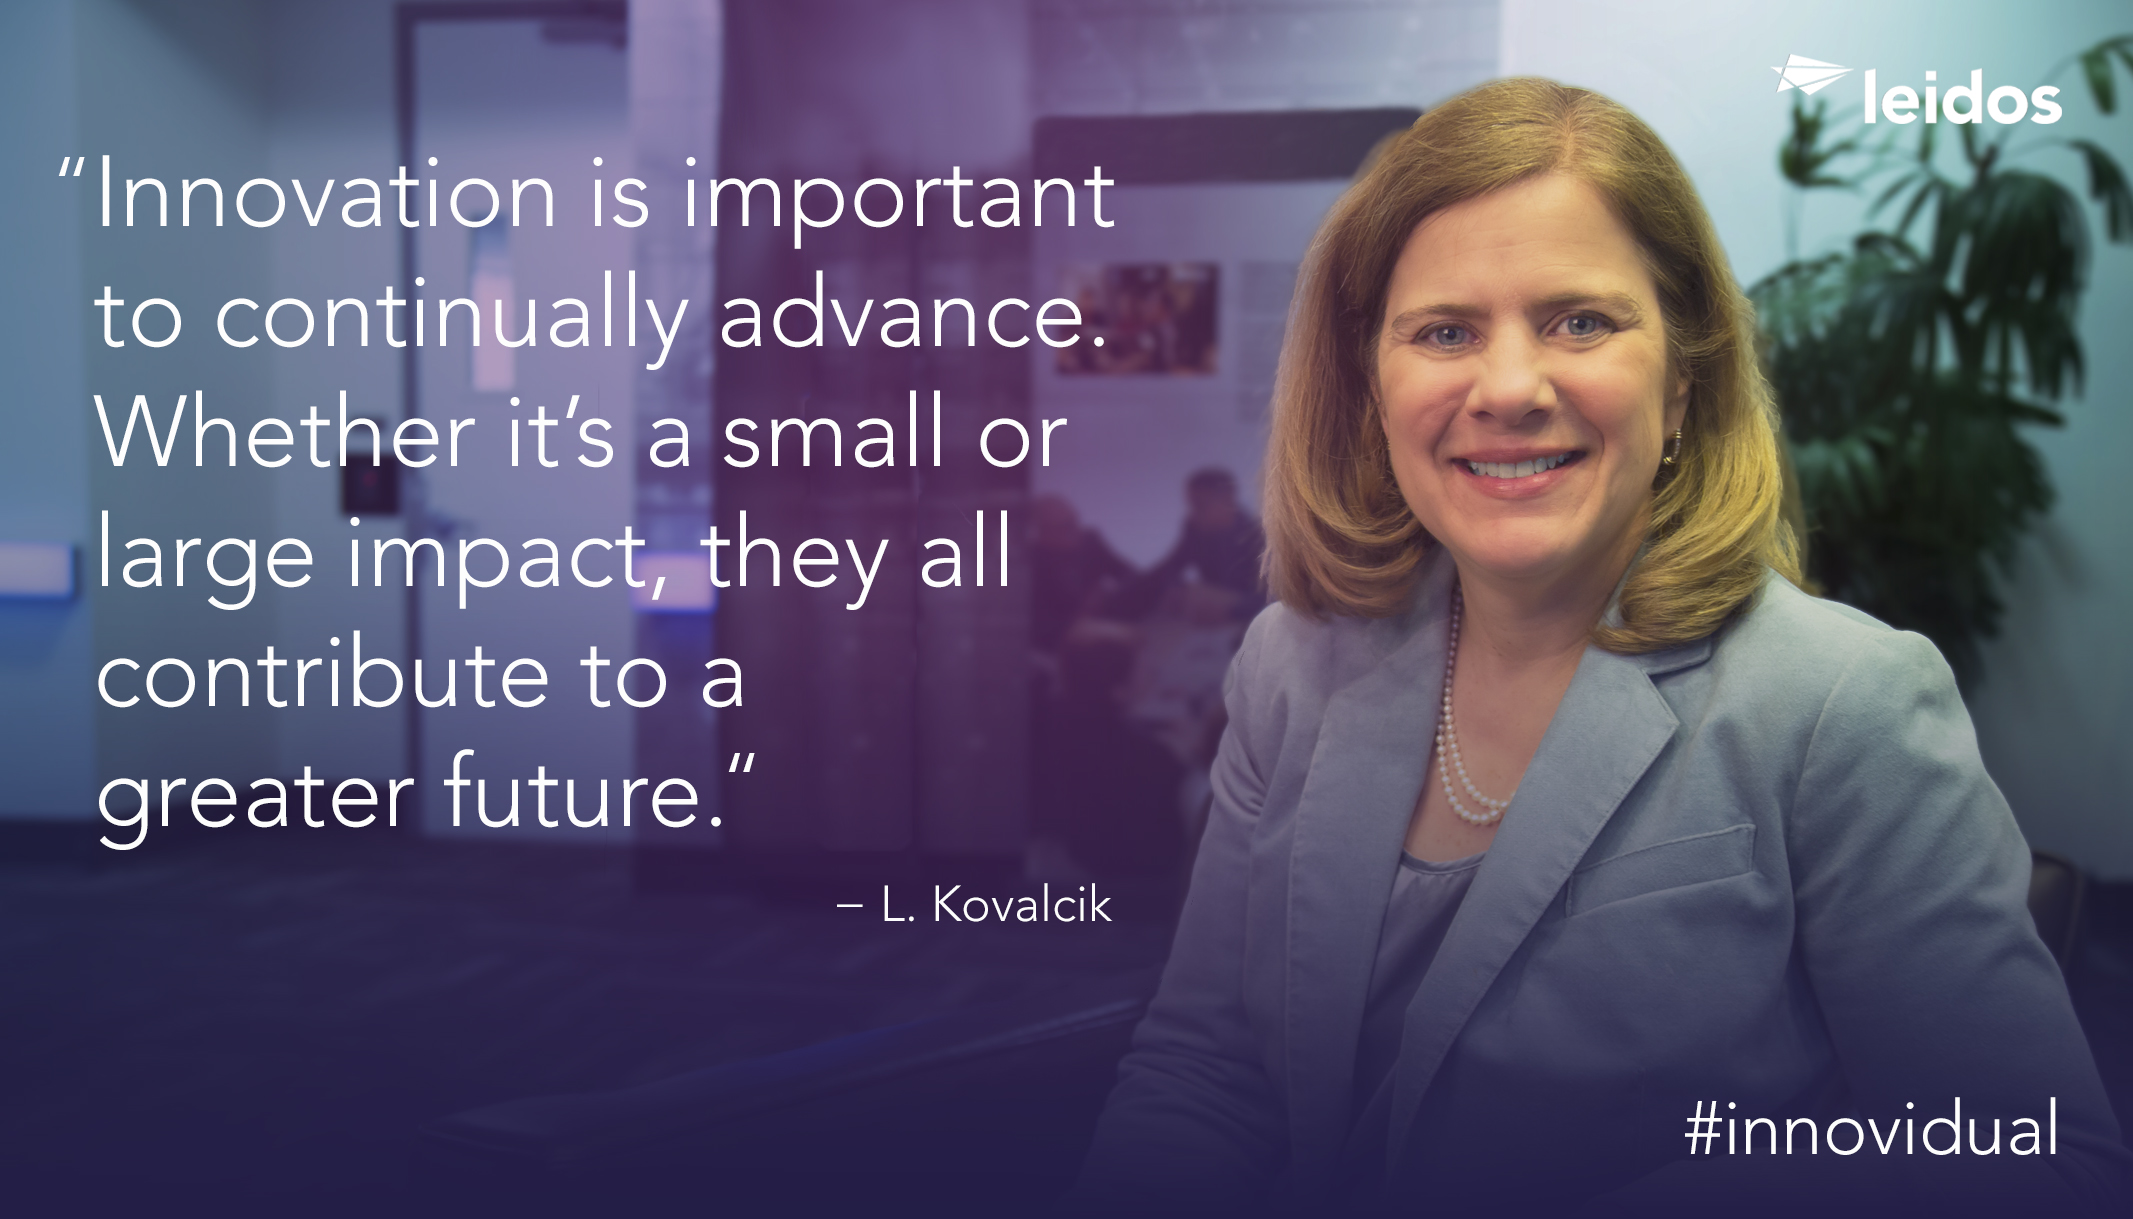 Luanne Kovalcik is the program manager for the Time Based Flow Management (TBFM) program at Leidos.